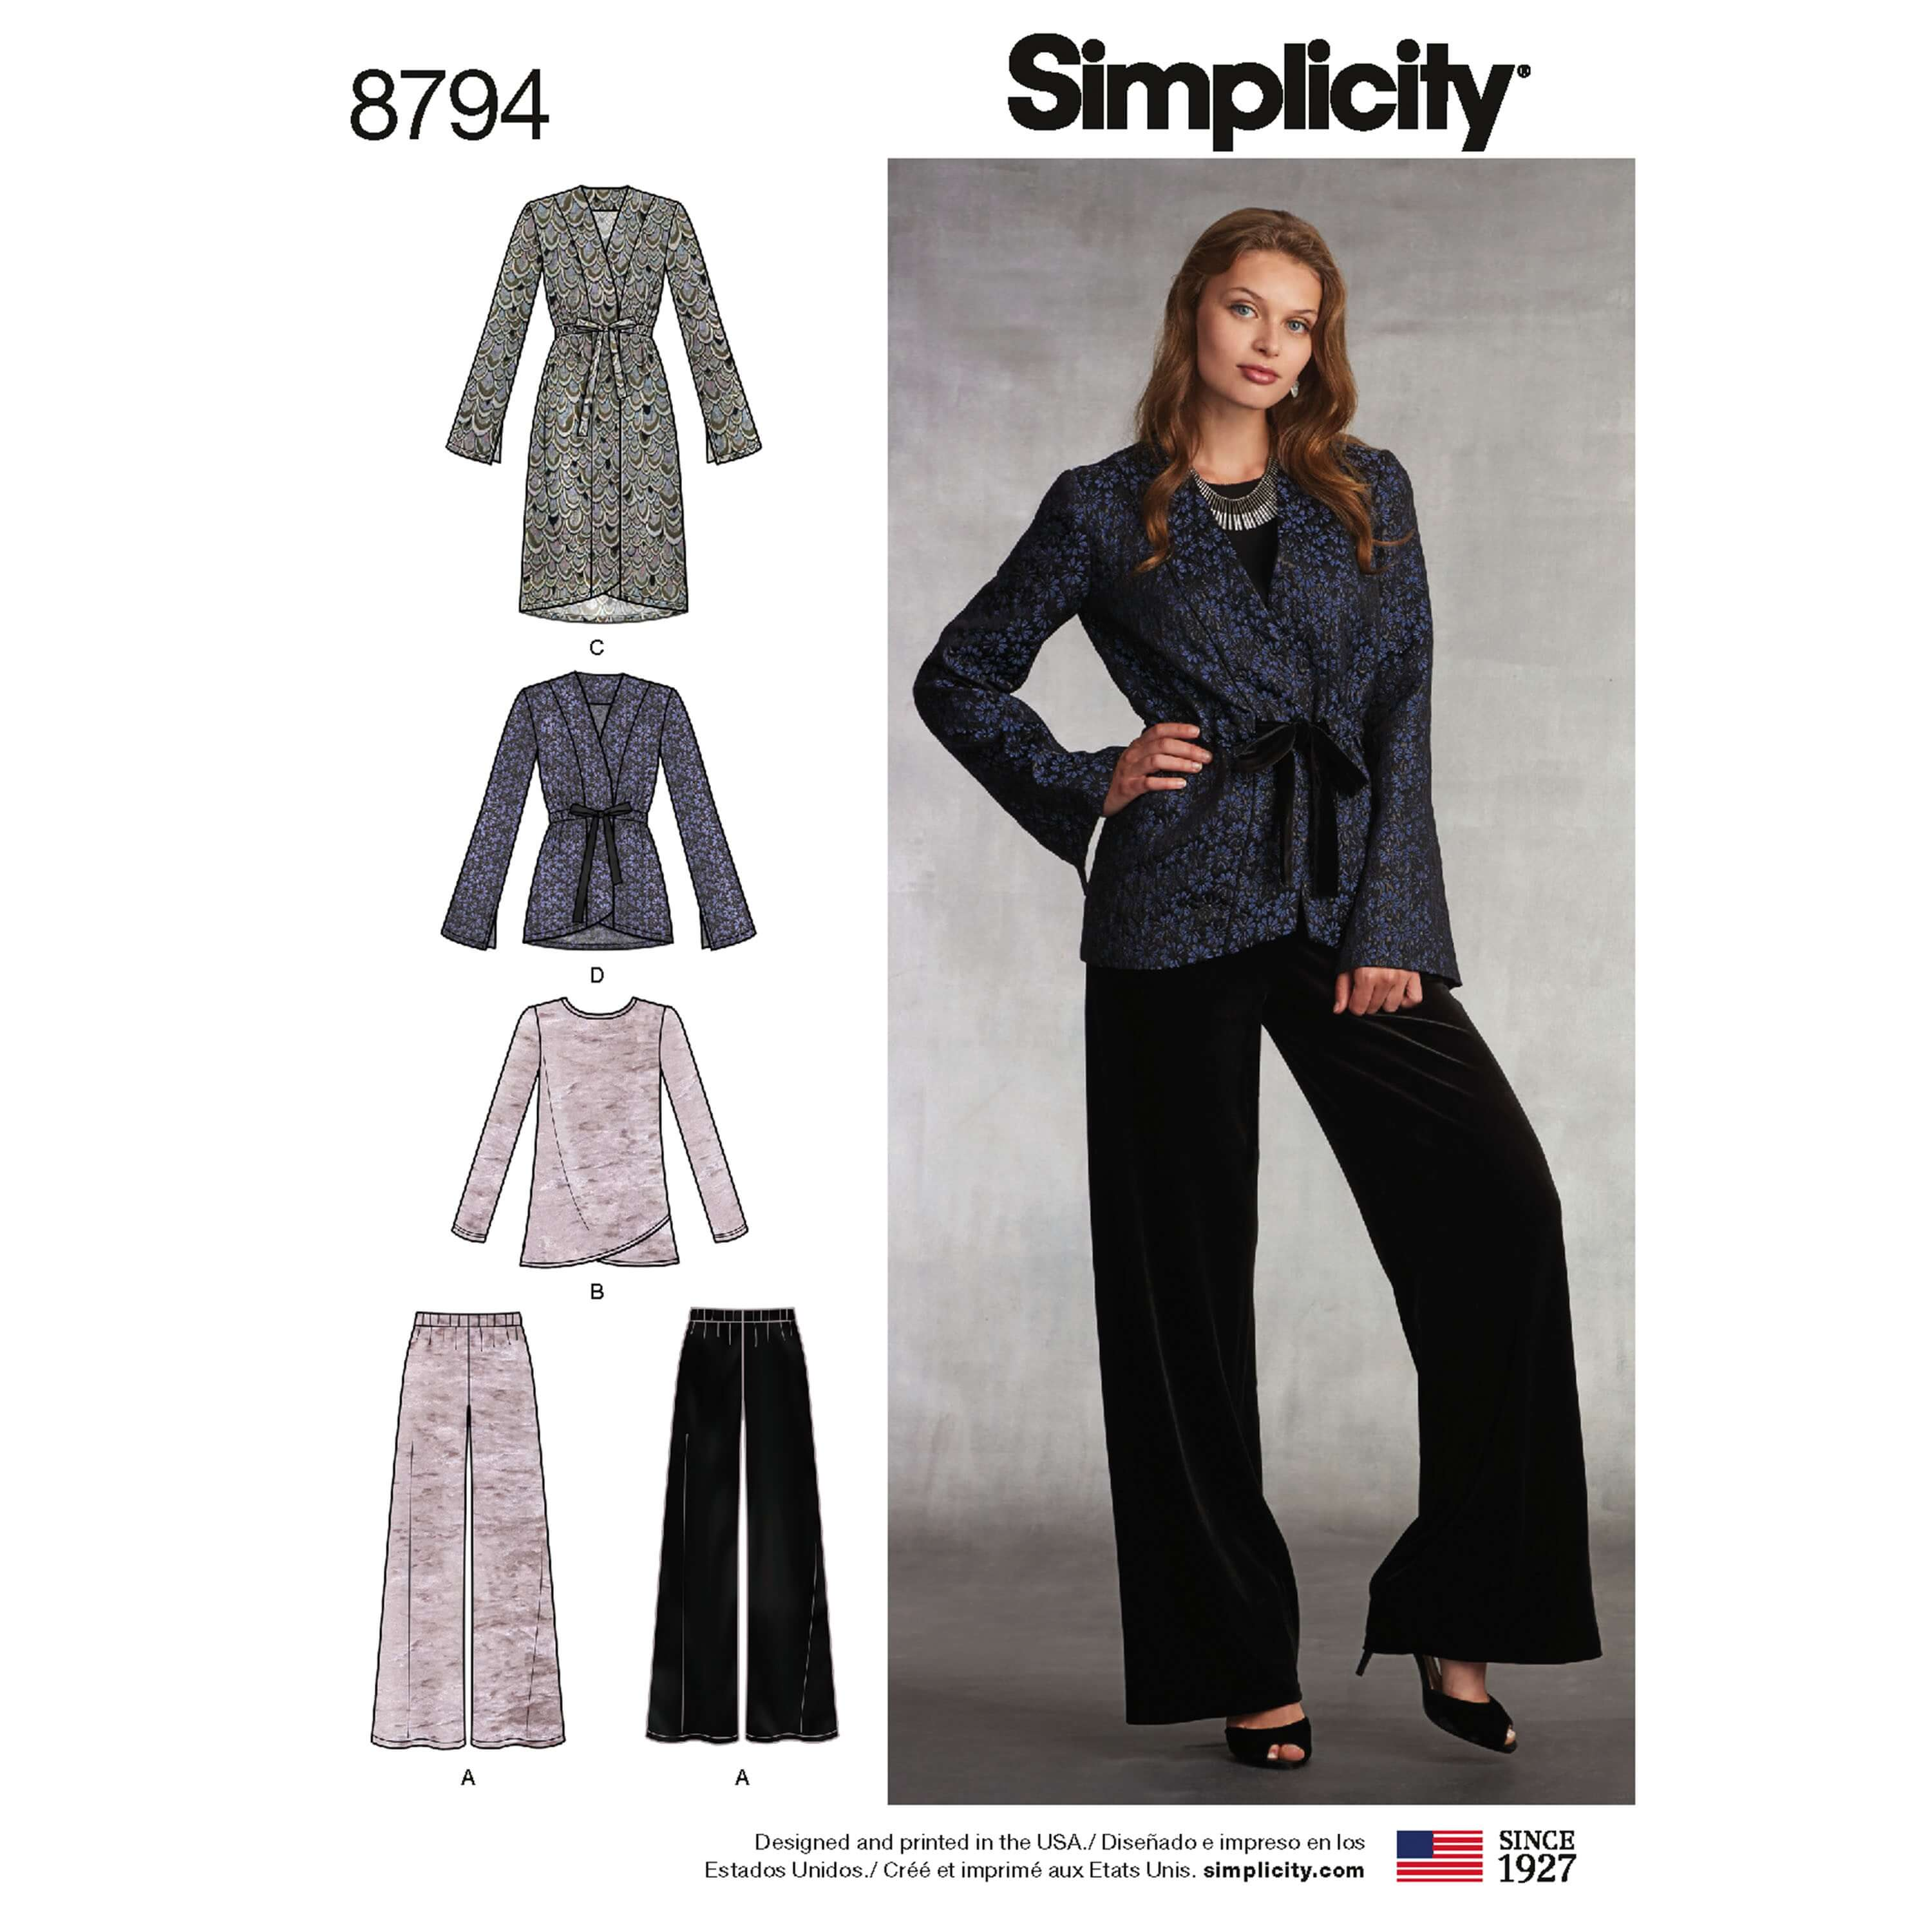 Simplicity 8794 Misses' Jacket Top & Trousers Sewing Pattern